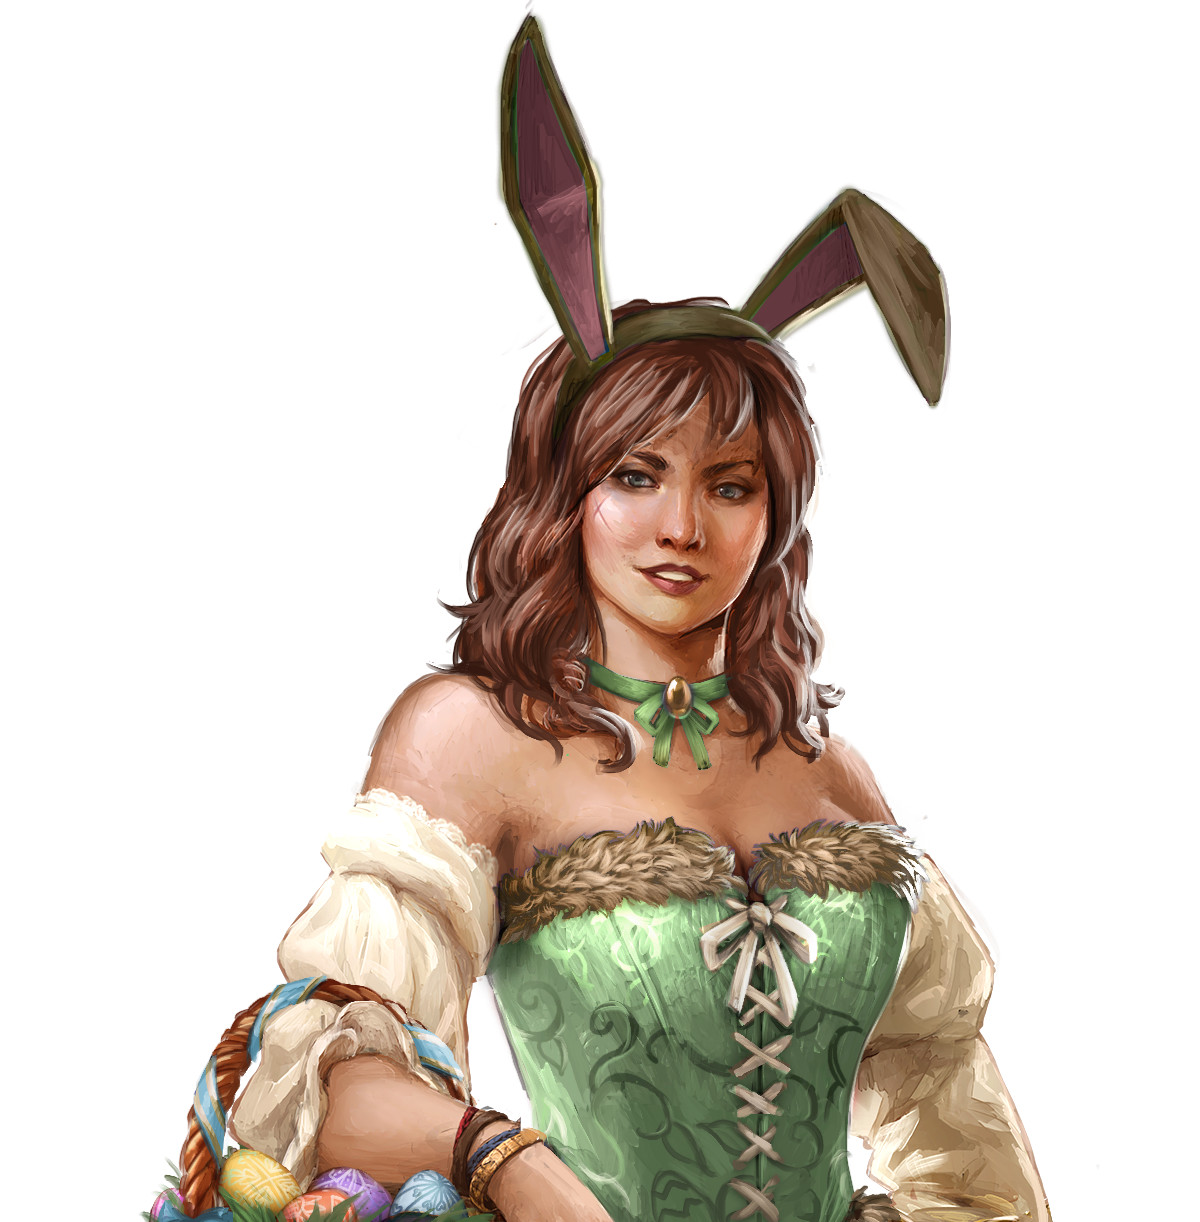 Bunny girl NPC who gives the event quests in 'Ships of Battle: Age of Pirates'